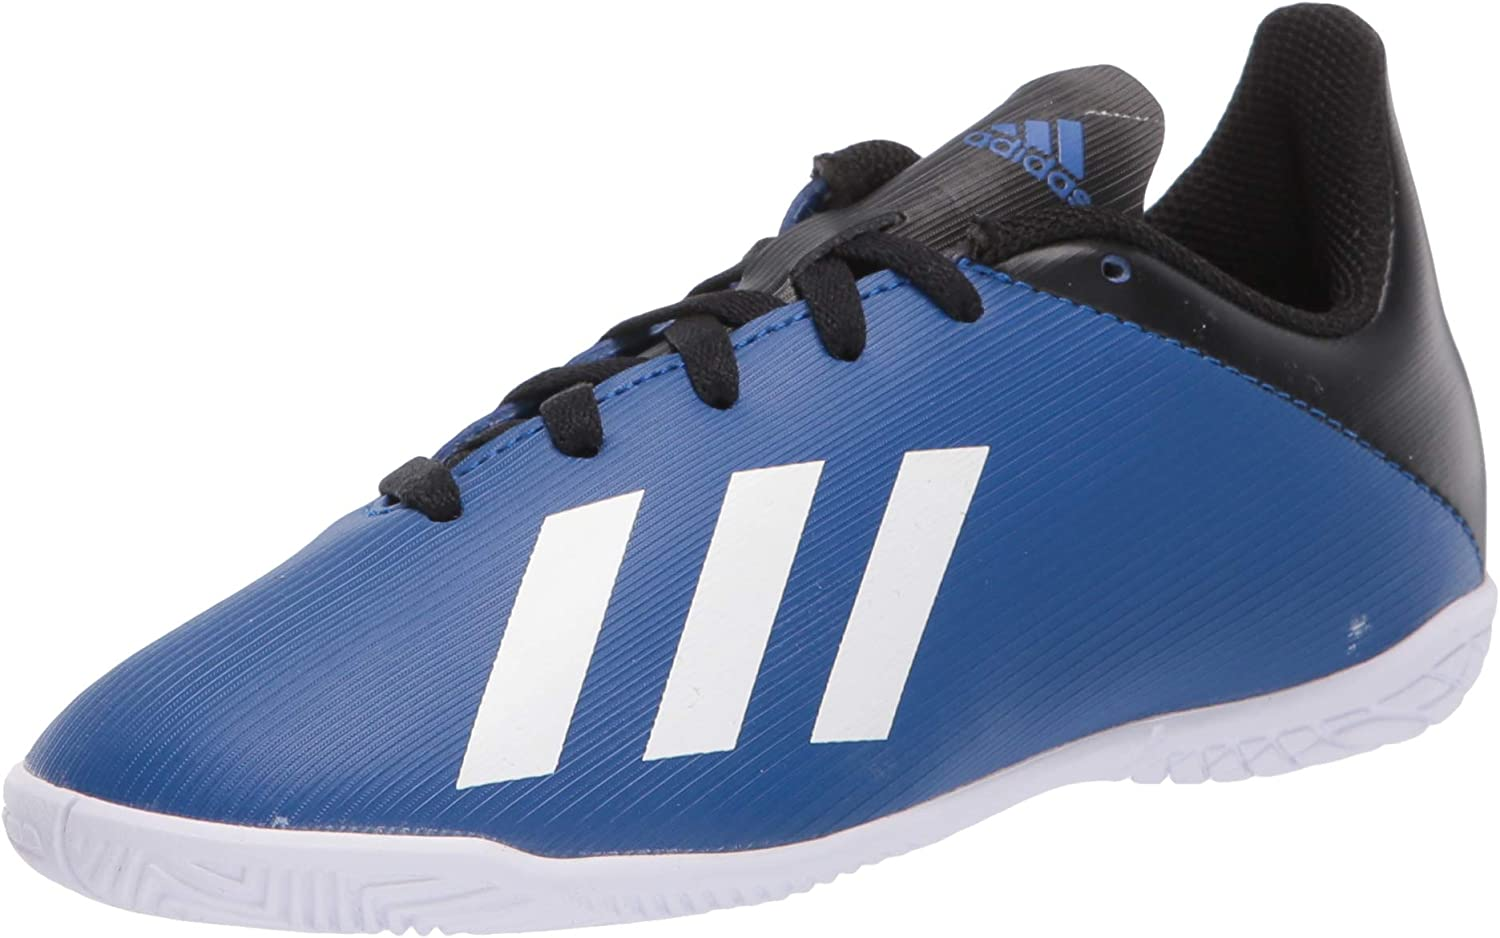 adidas Super sale period limited Unisex-Child X 19.4 Soccer Sales Shoe Indoor Boots